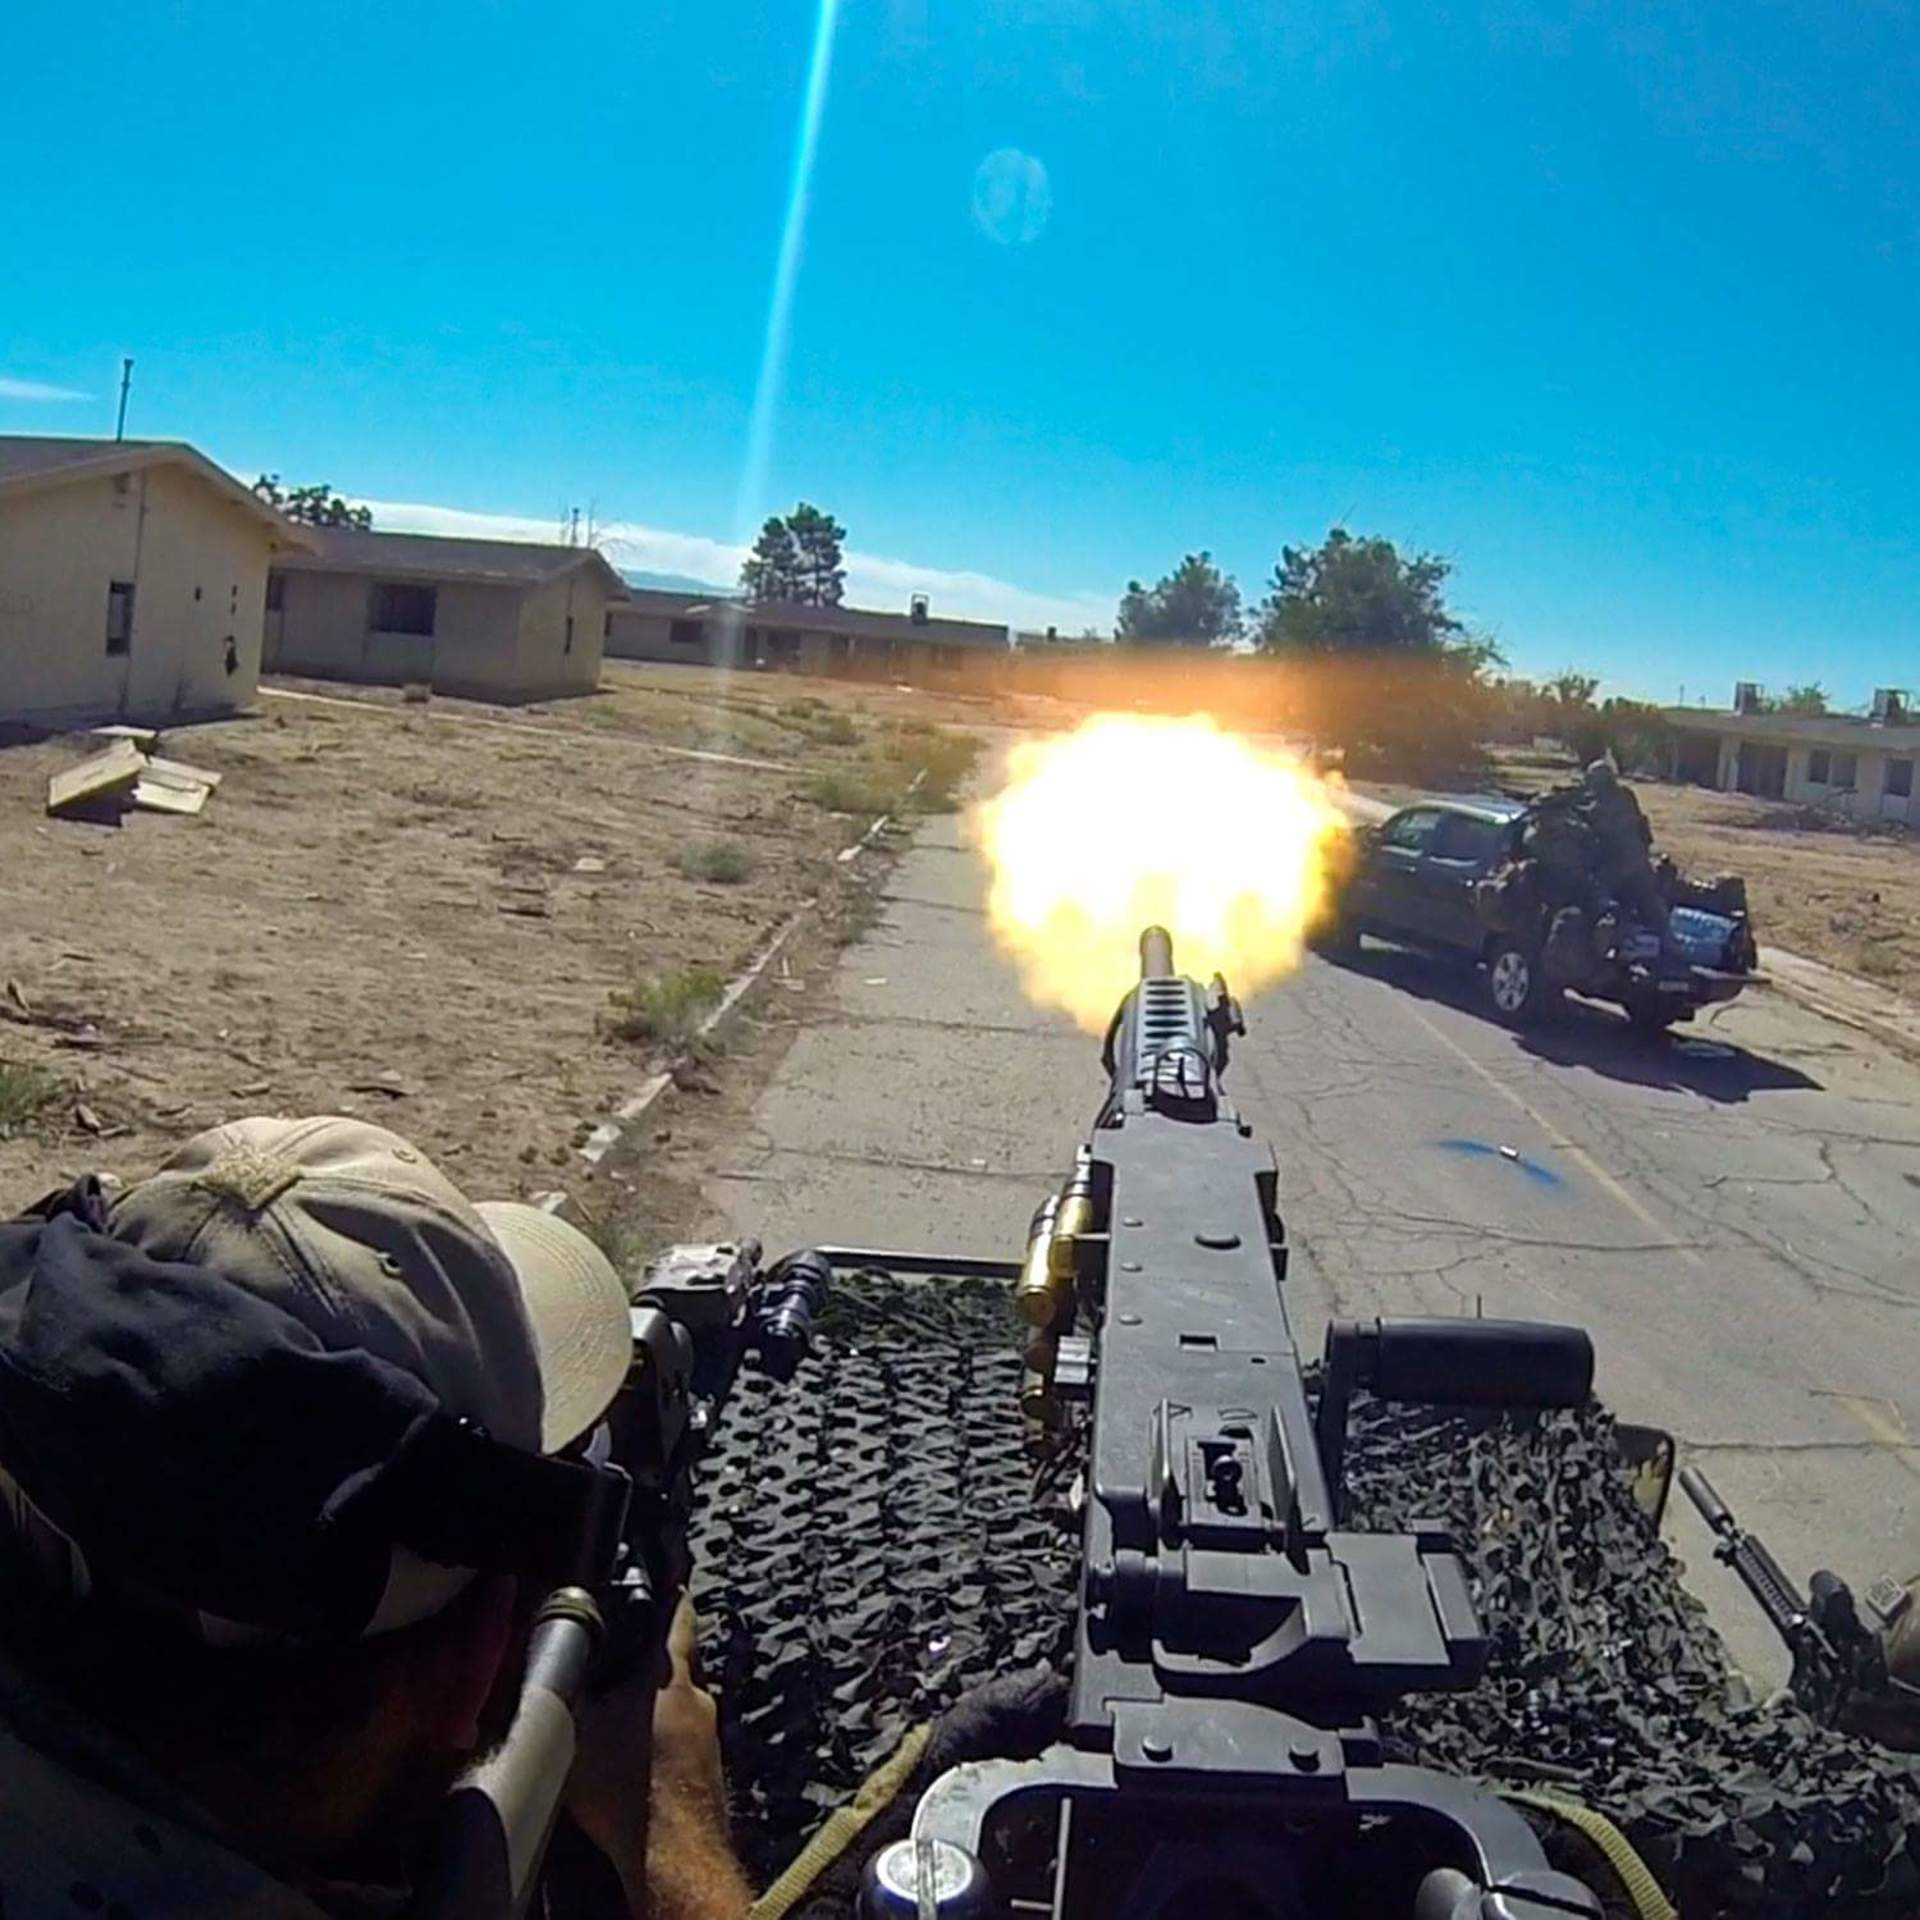 shooting m2 50cal | brian.holt, building, conflict, daytime